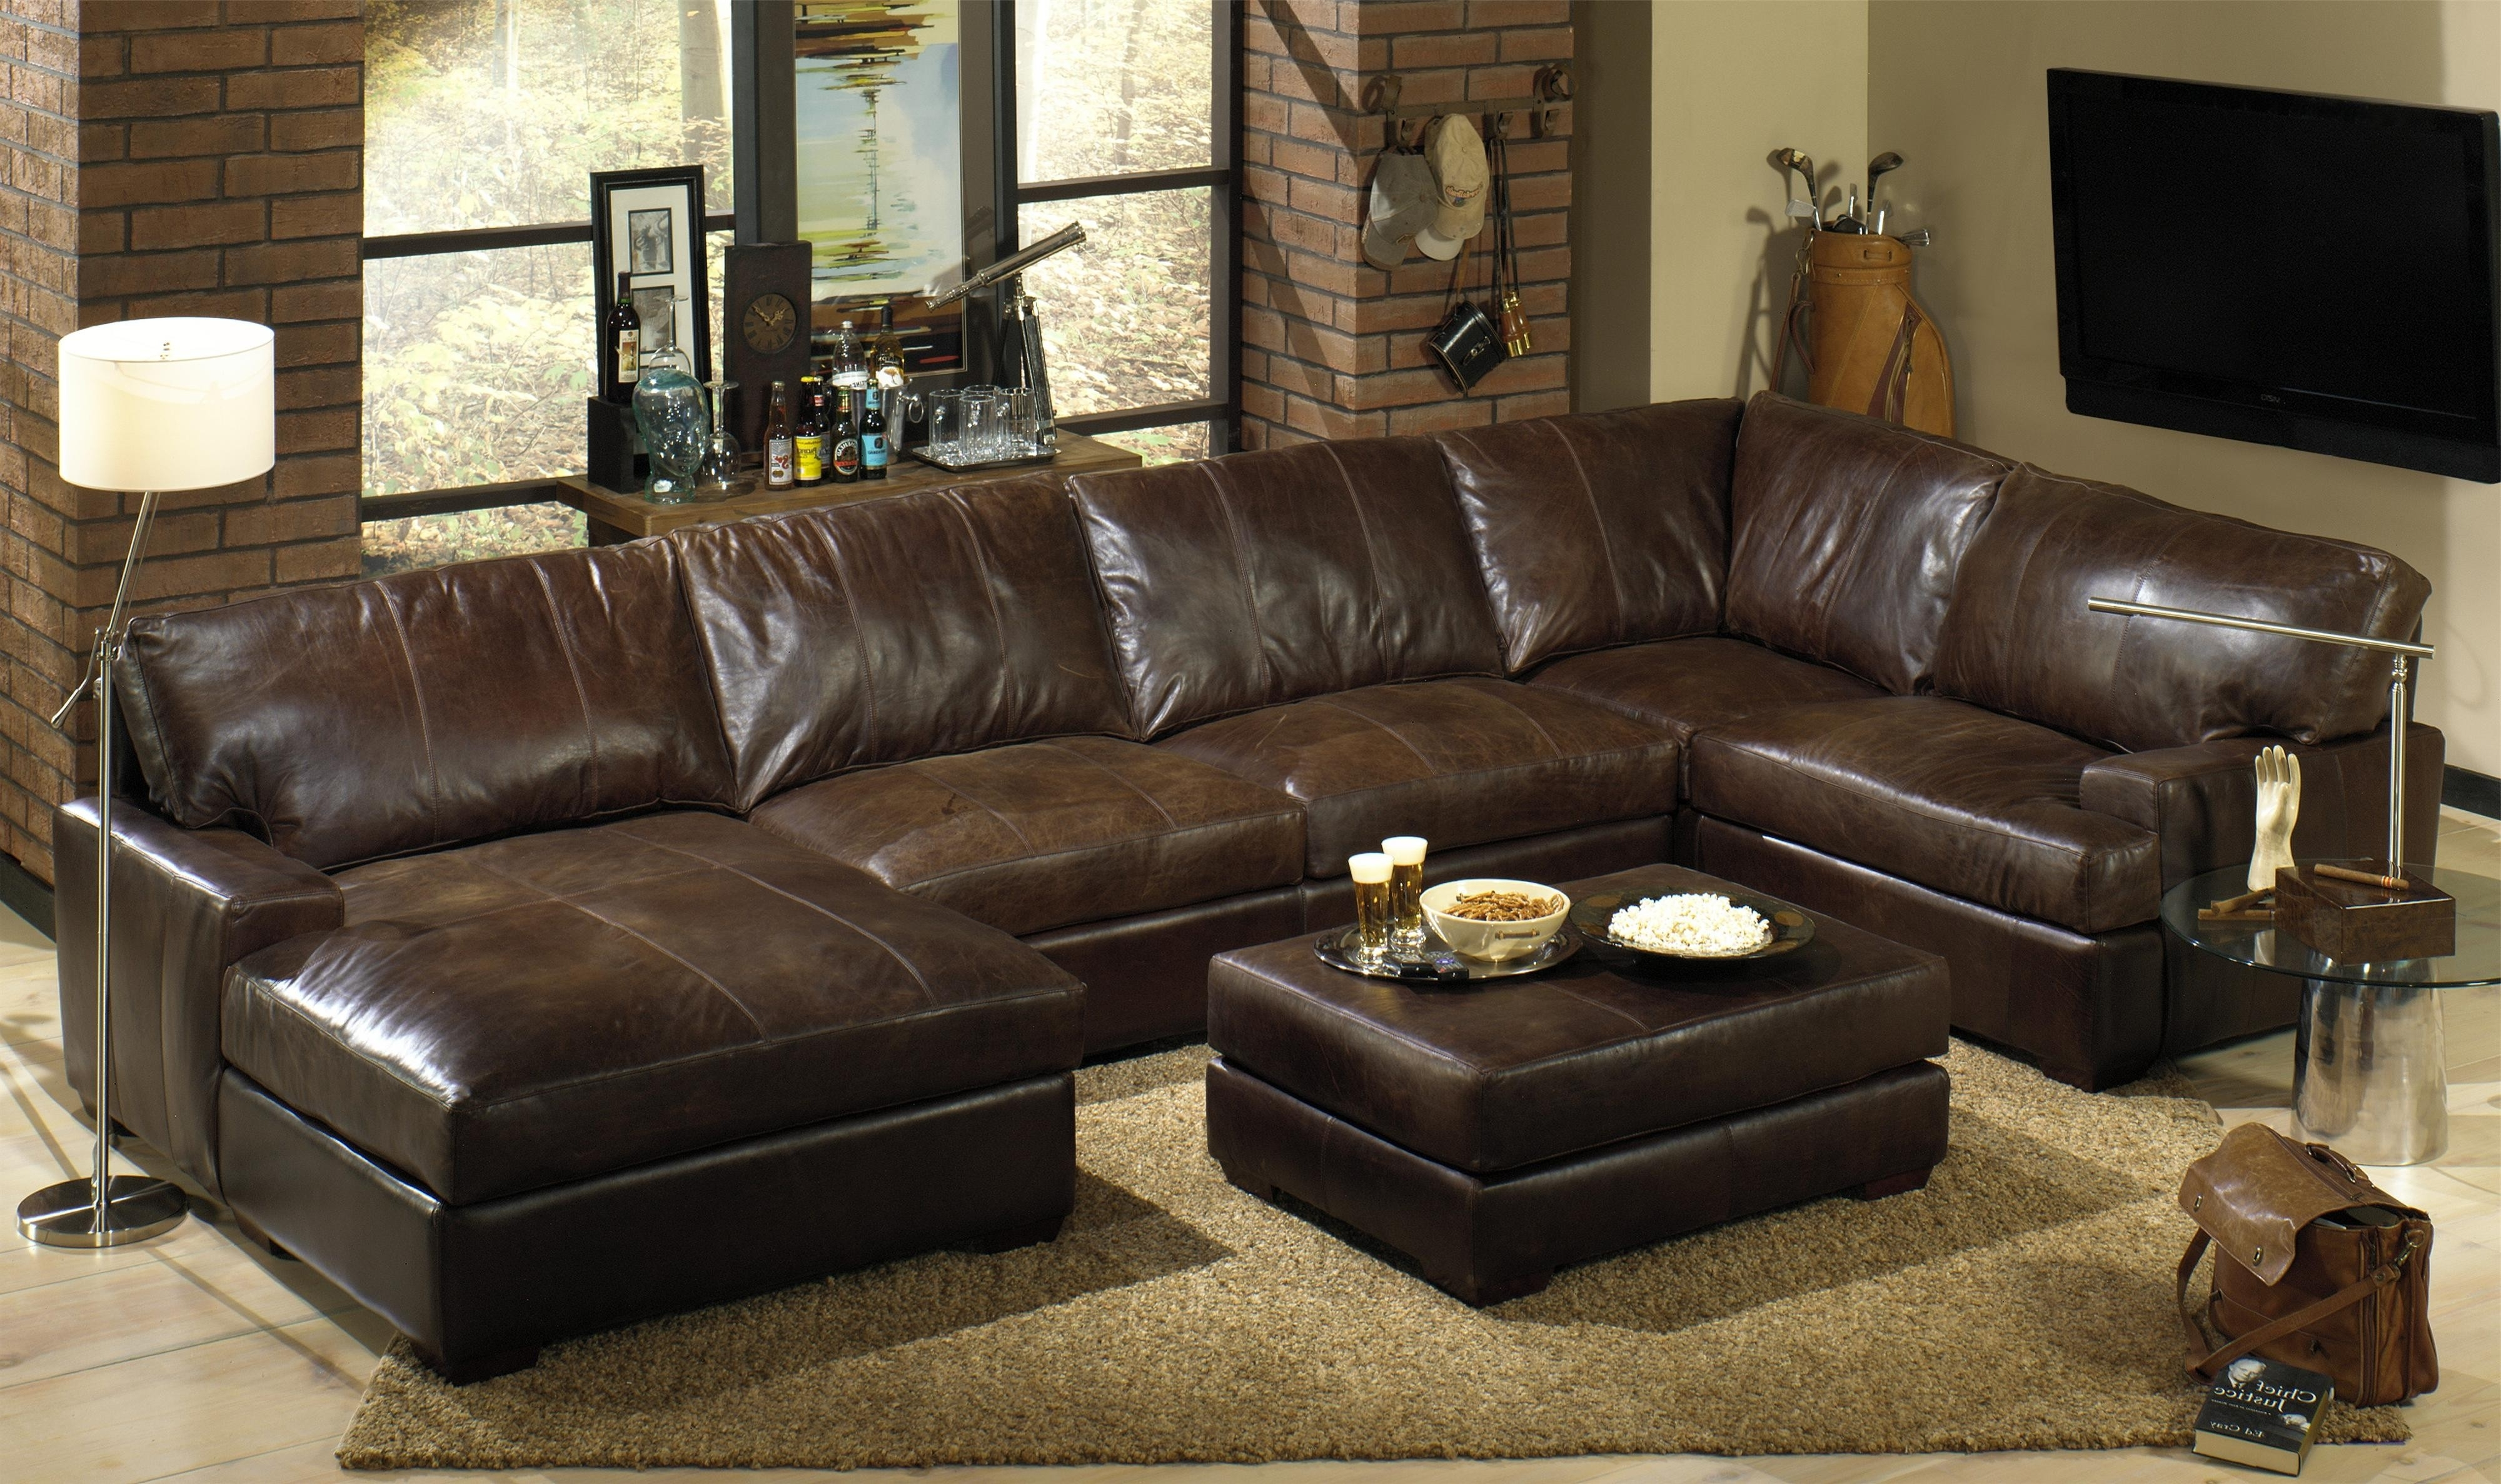 Furniture Gallery Image And Pertaining To Sectional Sofas At Birmingham Al (View 6 of 20)